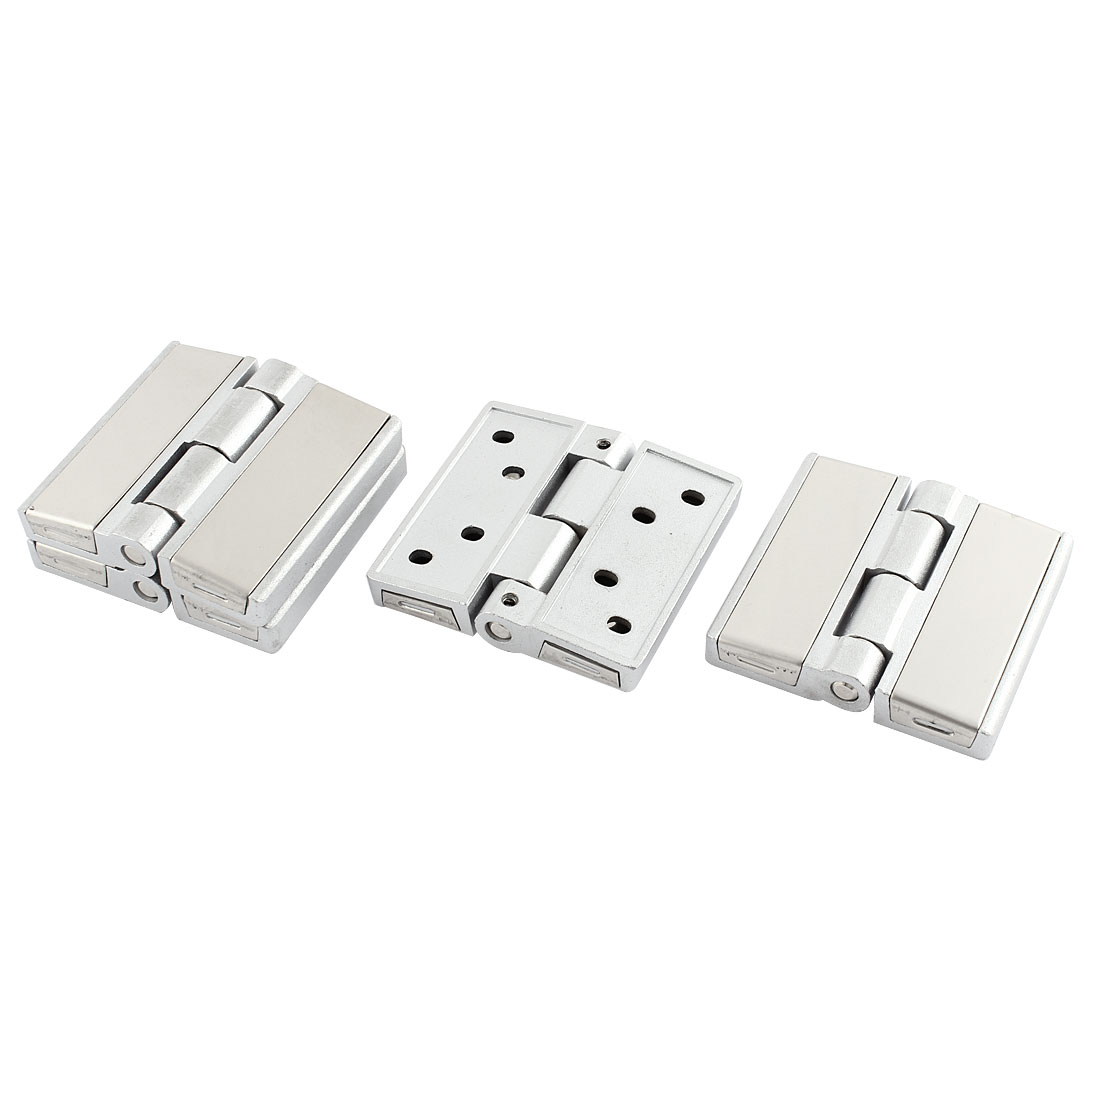 Window Cabinet Door 90 Degree Stopper Metal Hinge Hardware 64 x 60 x 11mm 4pcs